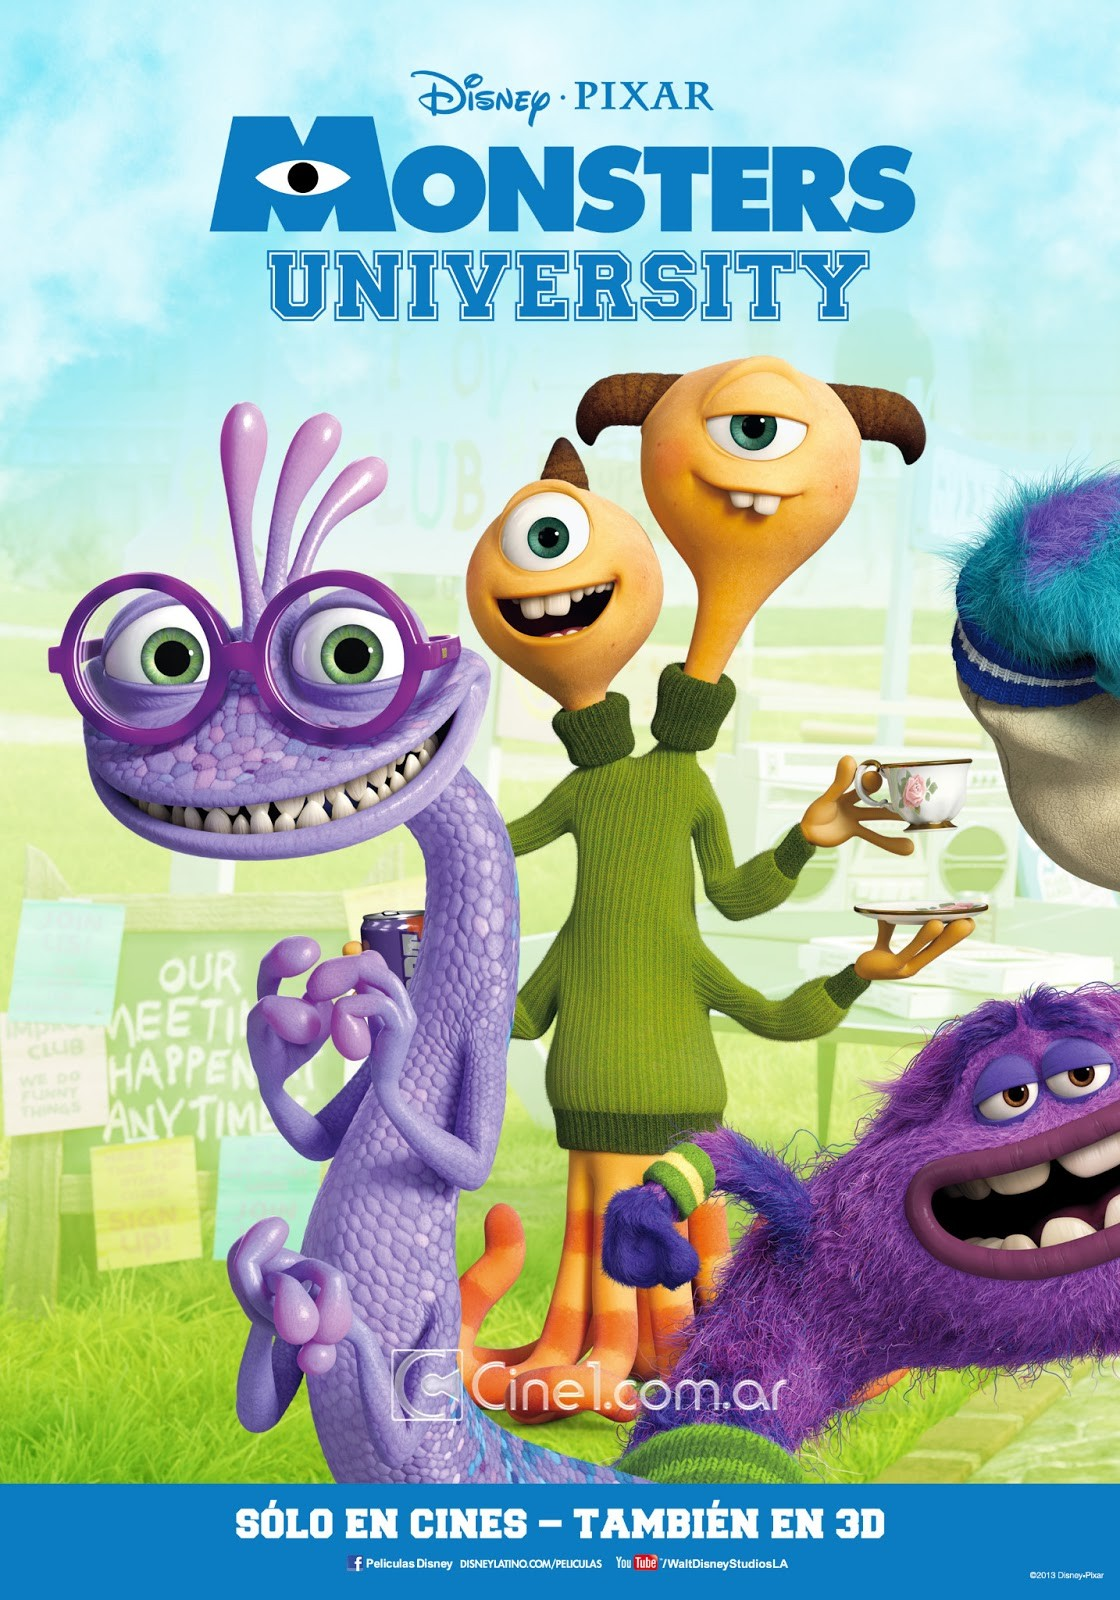 New international posters for monsters university